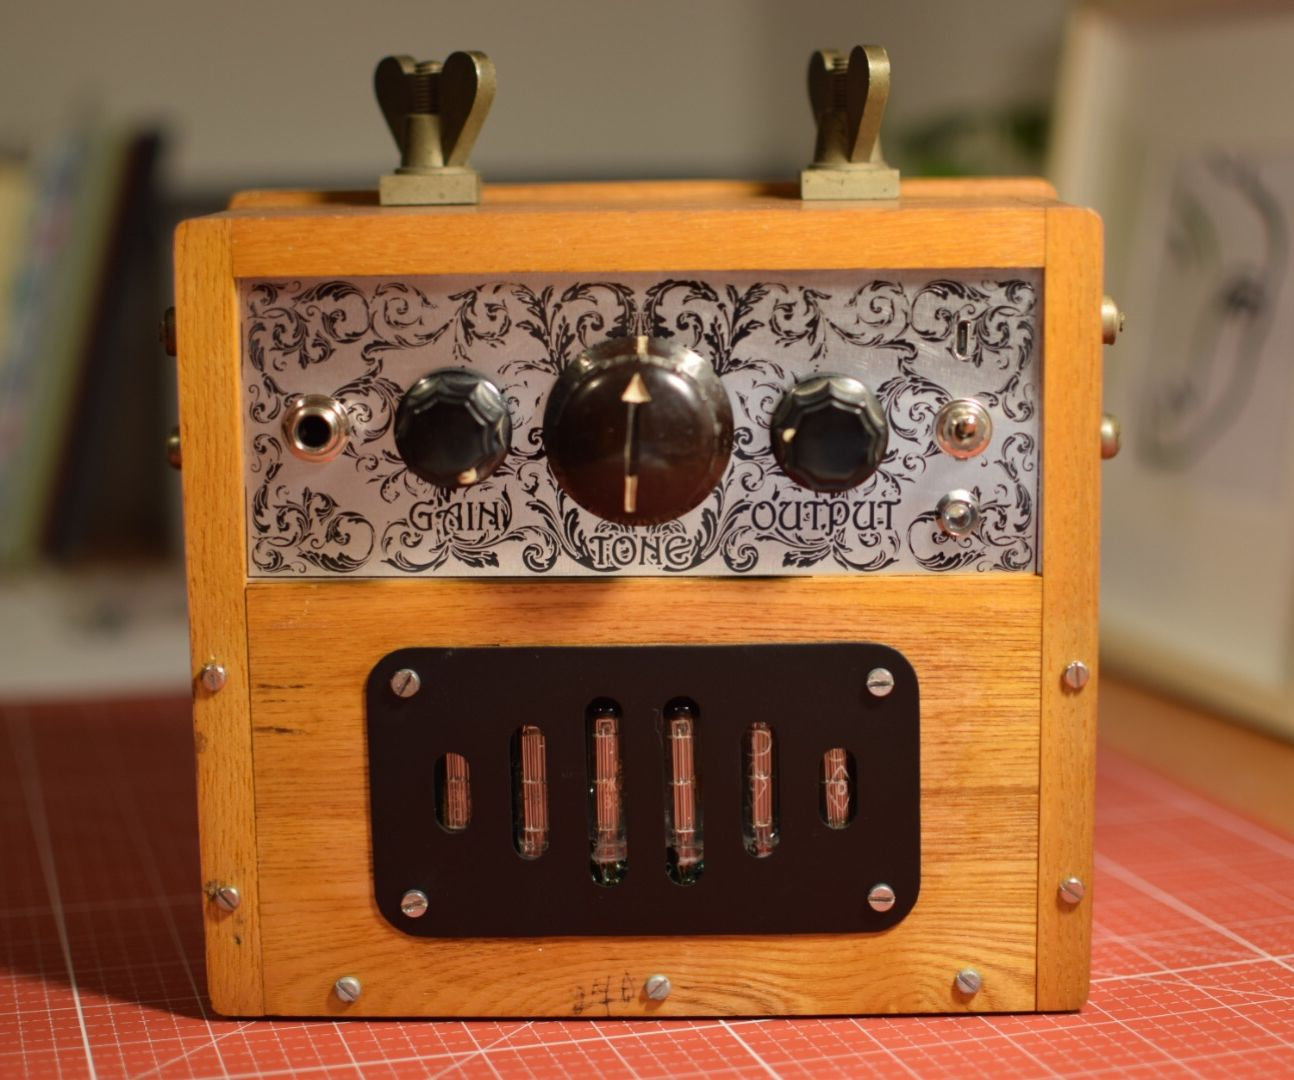 Battery Powered Tube Amplifier